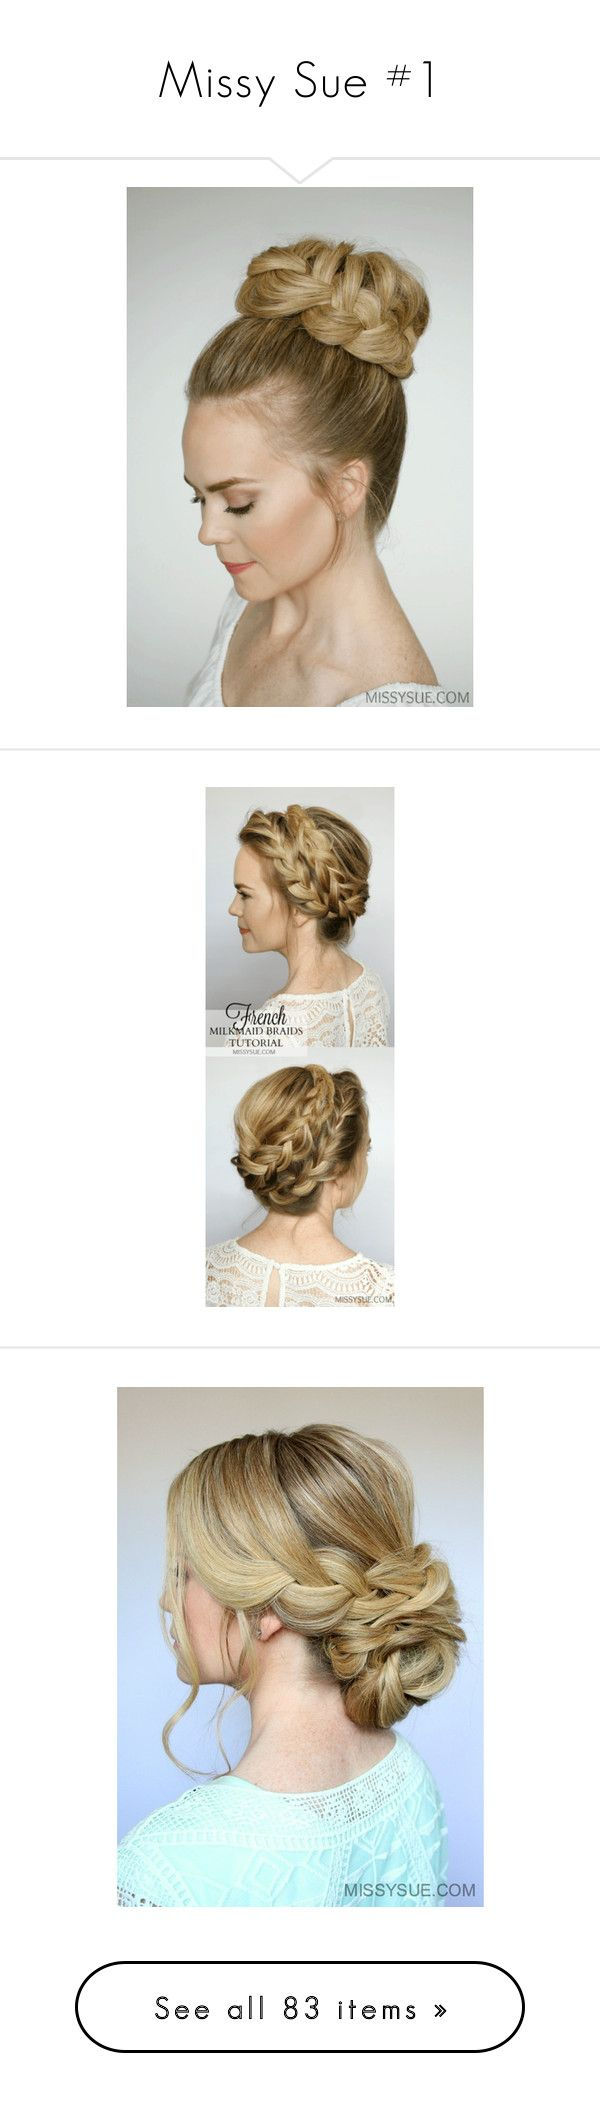 """""""Missy Sue #1"""" by tynabrookler ❤ liked on Polyvore featuring headband hair accessories, bride headband, bridal headbands, formal hair accessories, hair extensions headband, braid crown, accessories, hair accessories, hats and beauty products"""